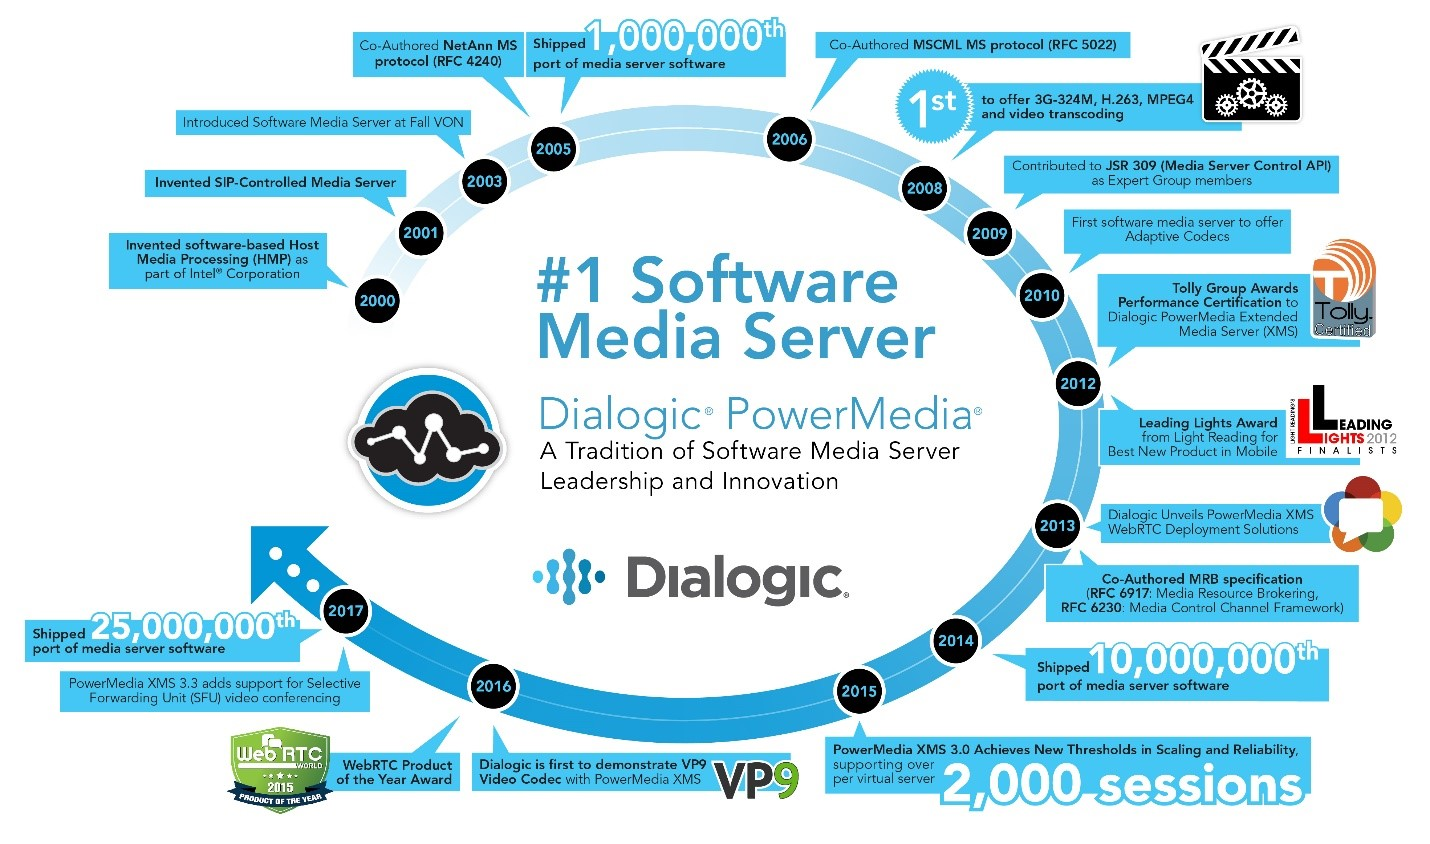 Dialogic PowerMedia #1 Software Media Server